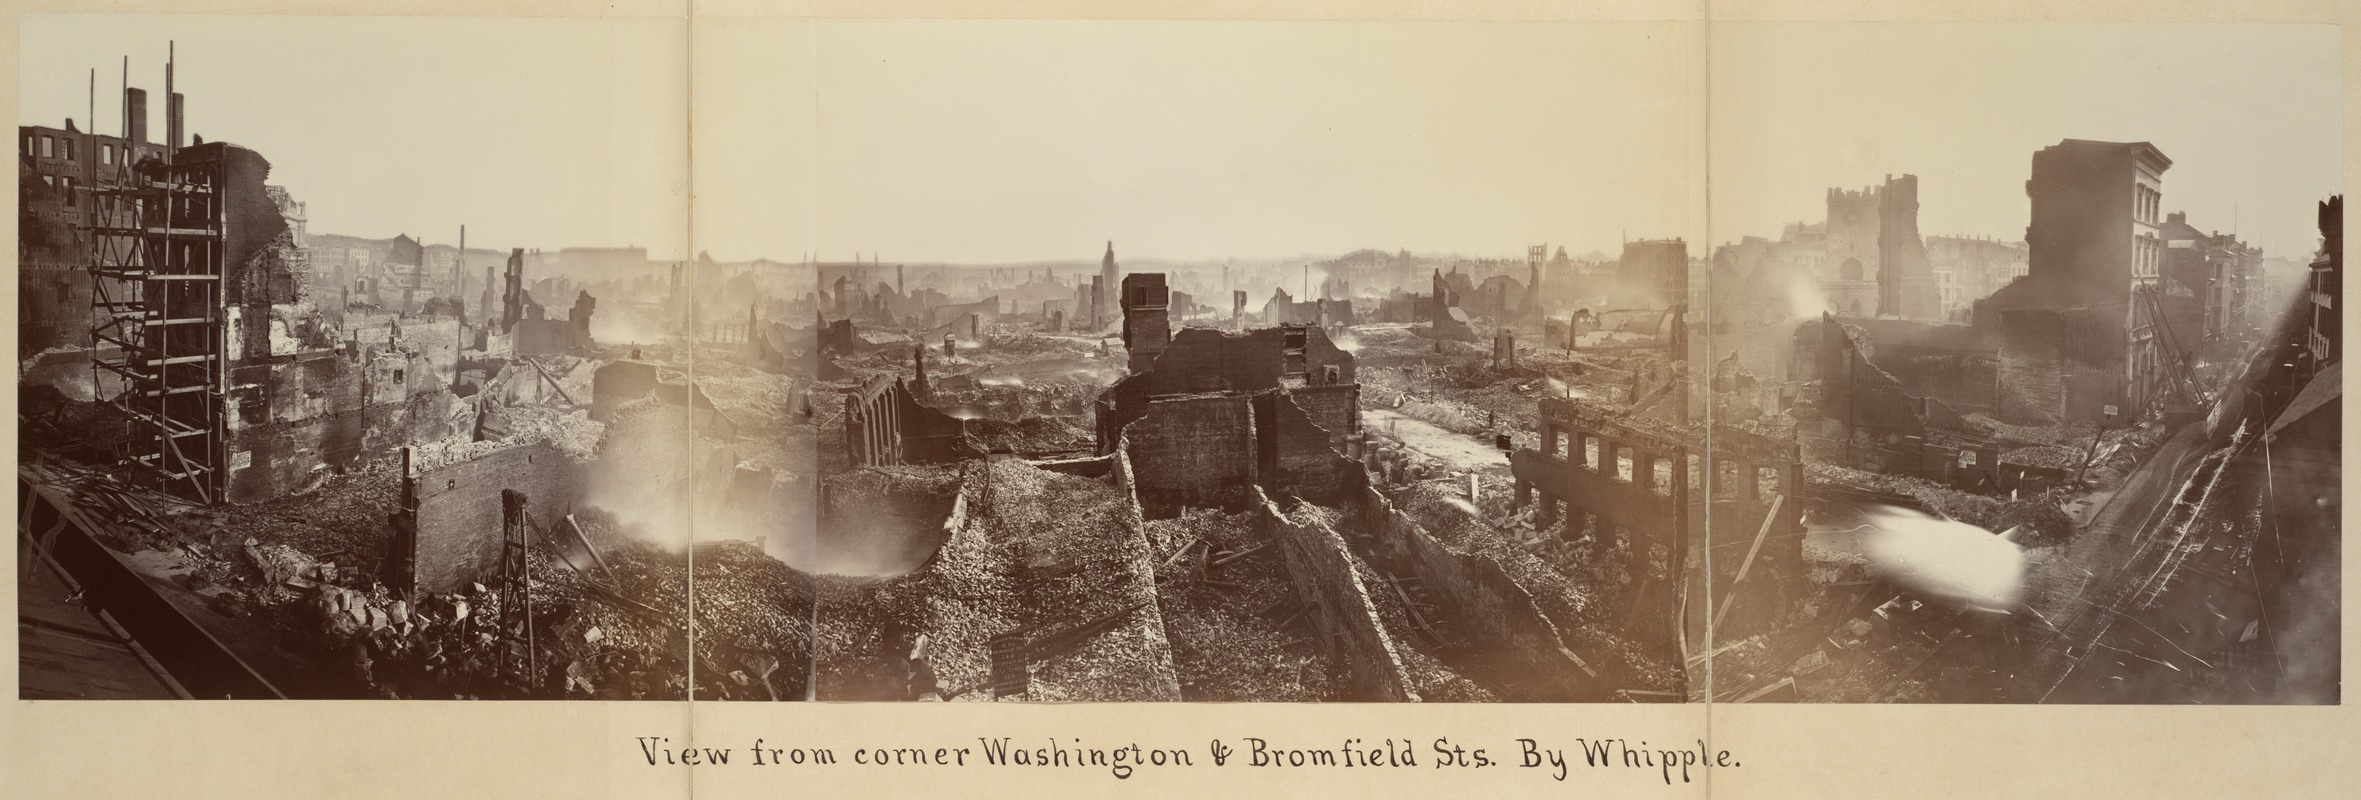 Panoramic of Washington & Bromfield following the fire of 1872 by Whipple (image from the Boston Public Library)